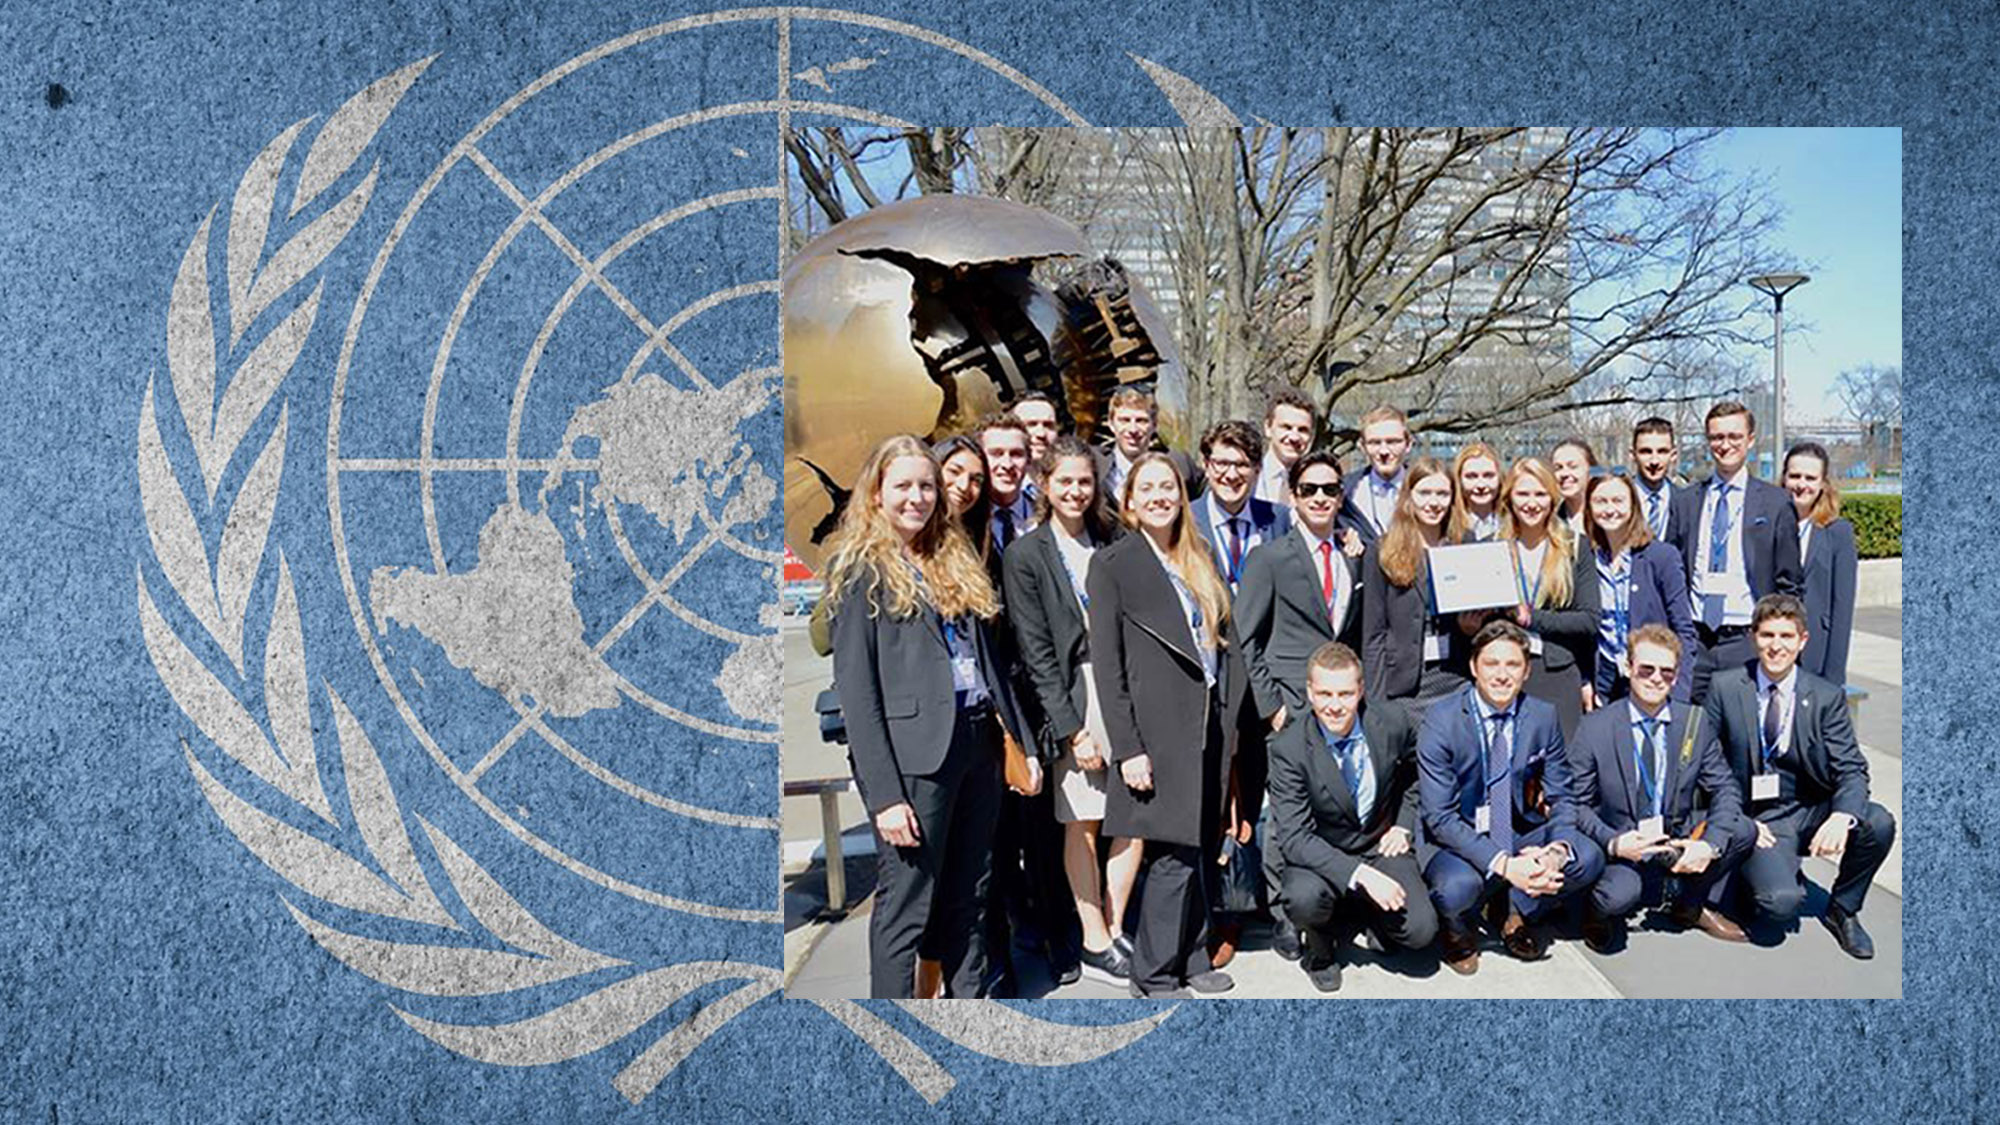 24 studentes of the University of St.Gallen at the National Model United Nations